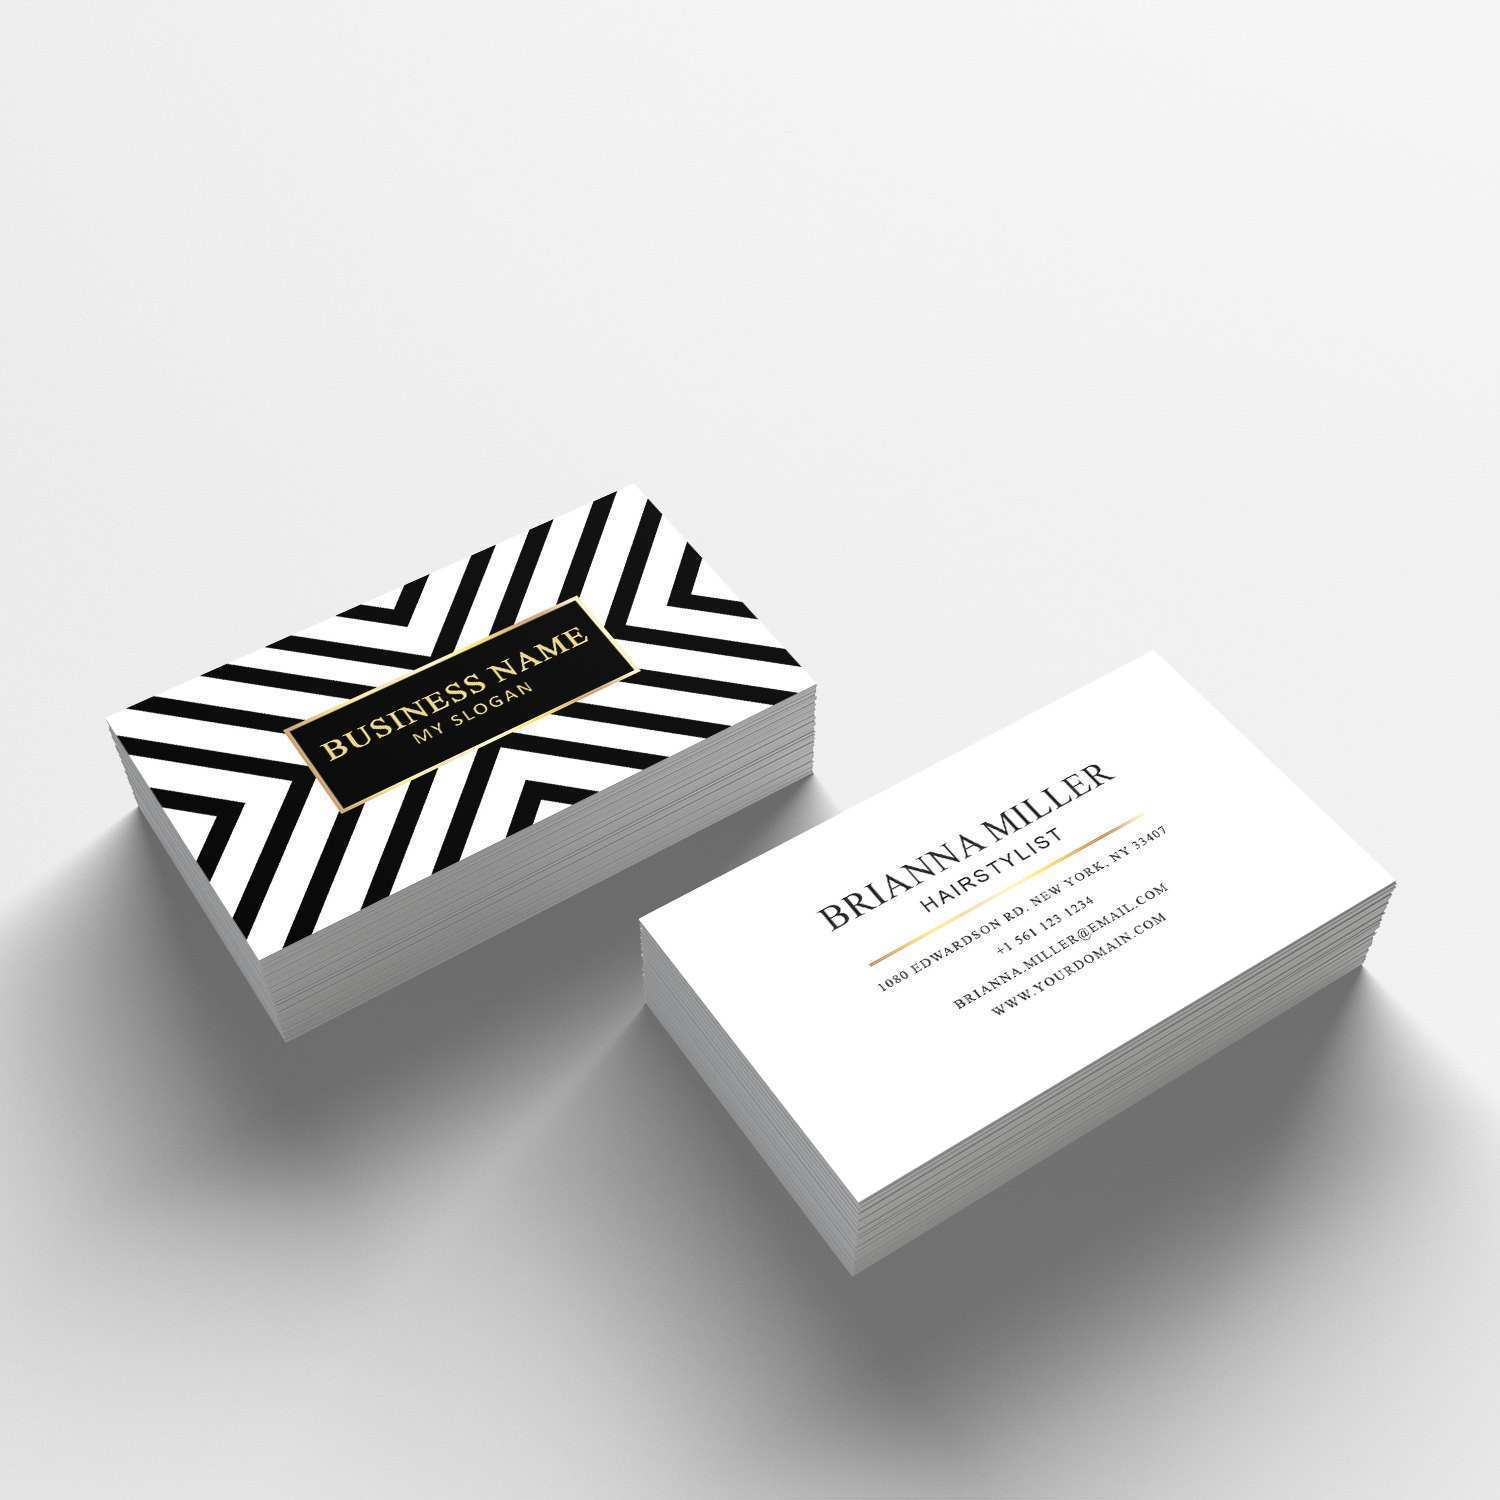 211 Creating 21 Sided Business Card Template Word in Photoshop with Throughout 2 Sided Business Card Template Word